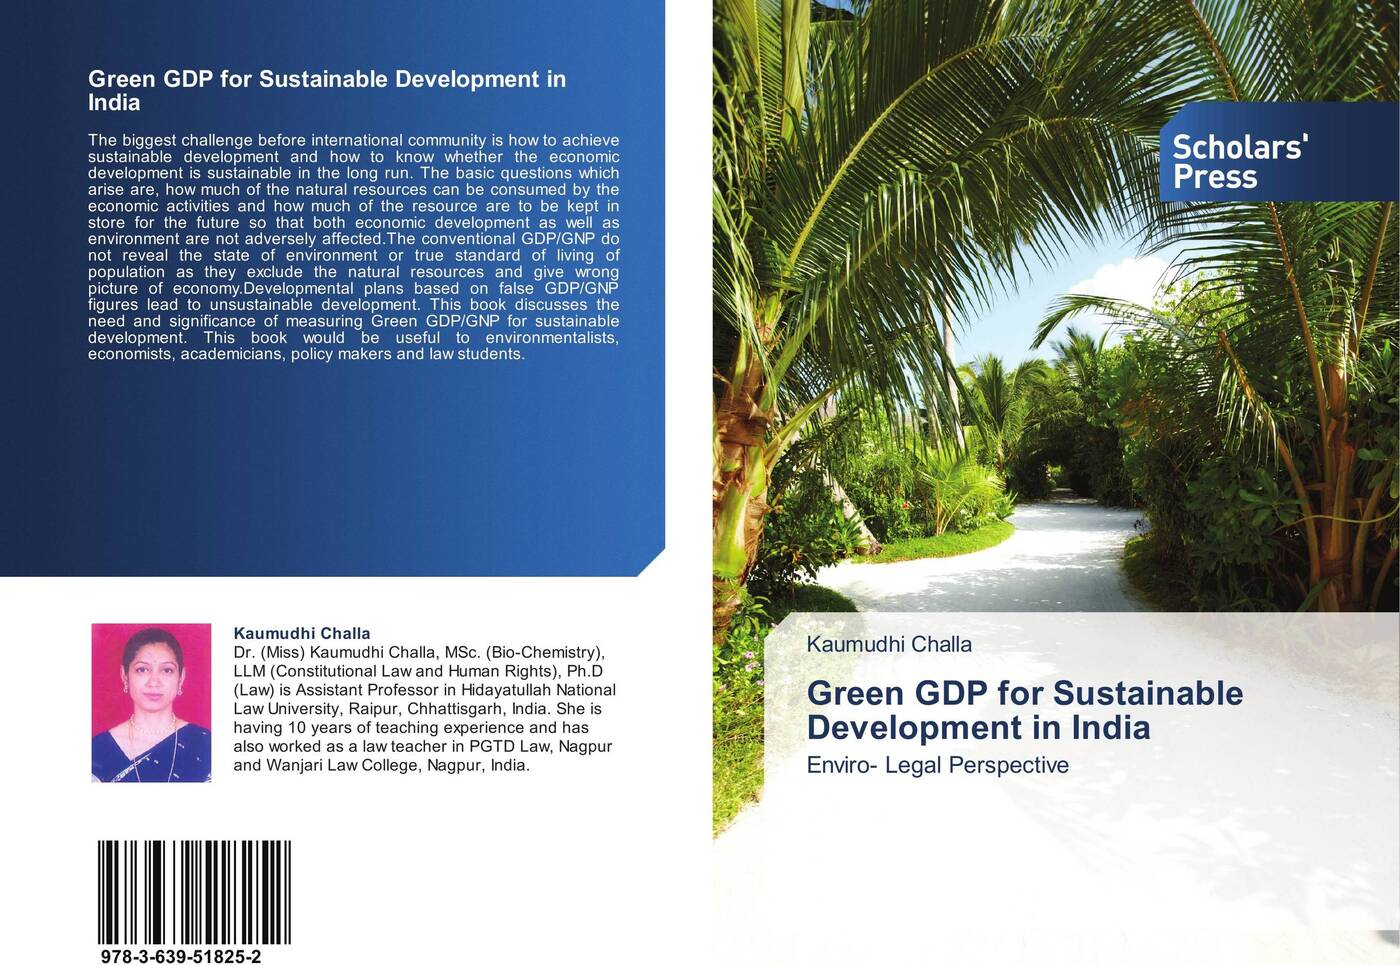 Kaumudhi Challa Green GDP for Sustainable Development in India karl weber talent transformation and the triple bottom line how companies can leverage human resources to achieve sustainable growth